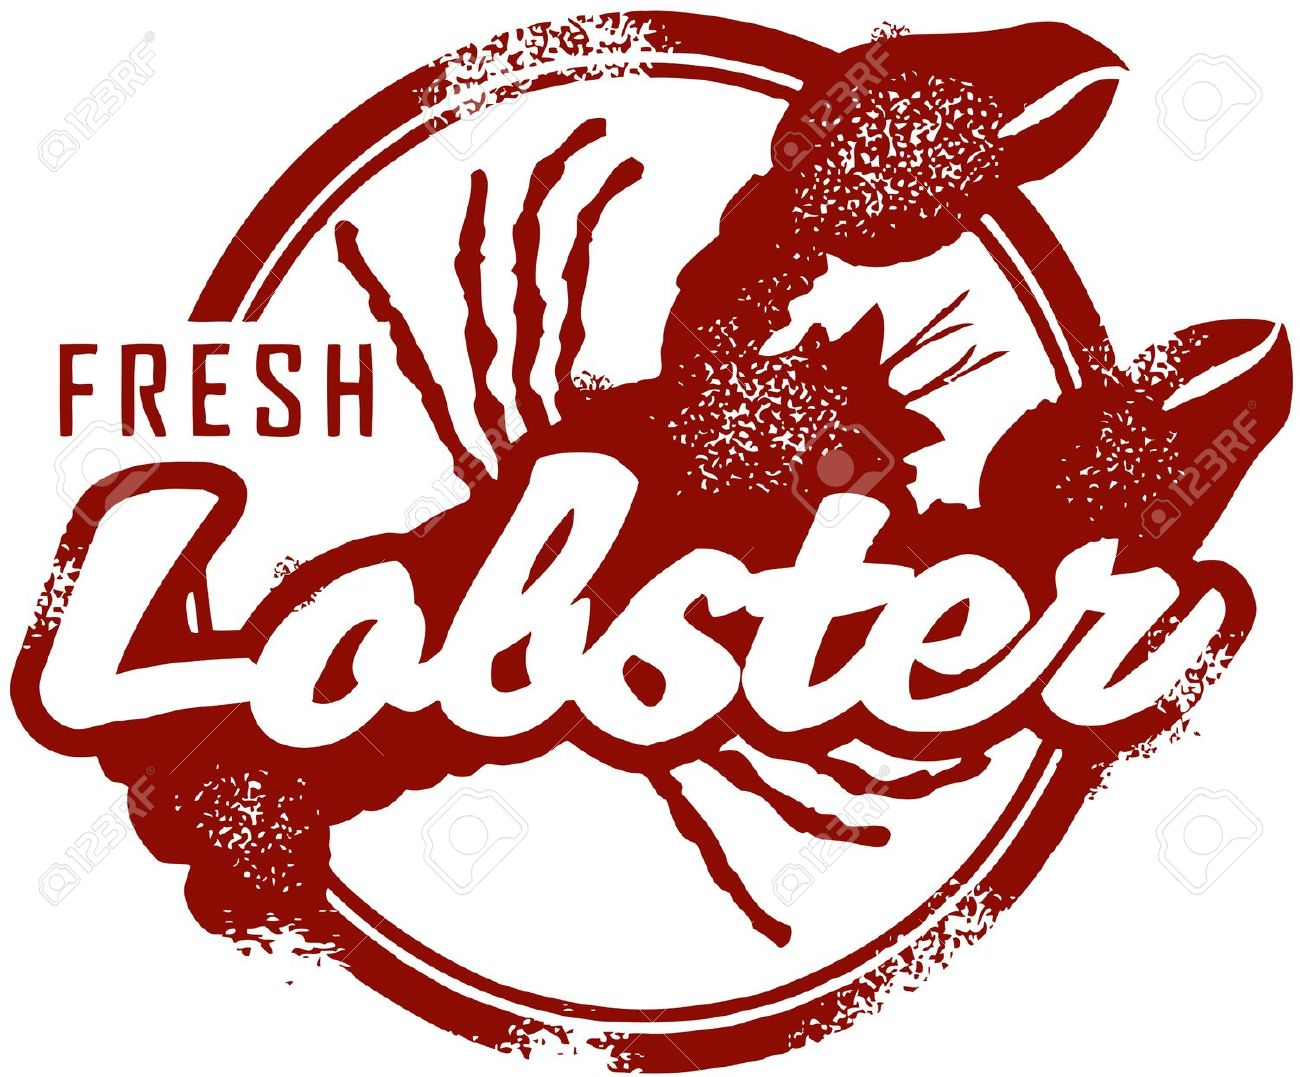 Lobster Stock Vector Illustration And Royalty Free Lobster Clipart.